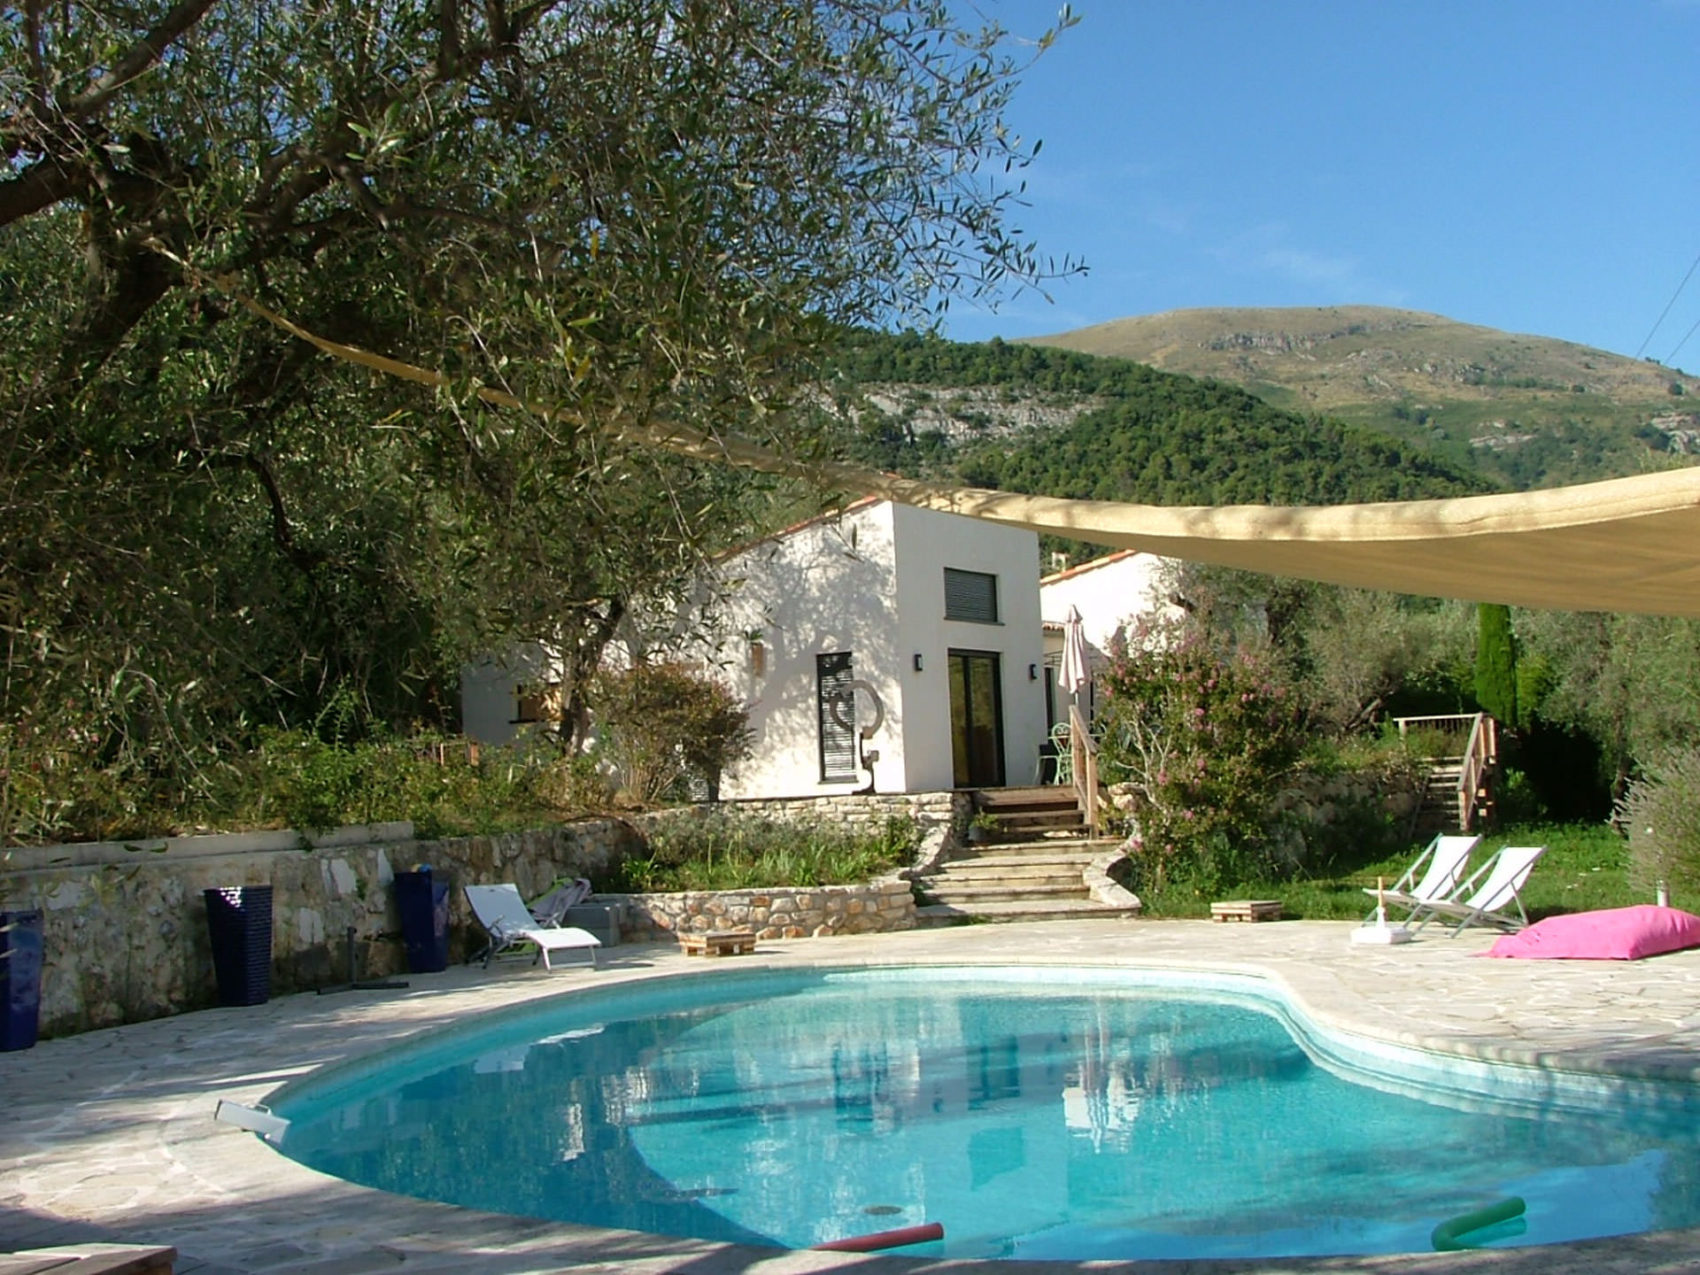 Bed And Breakfast In Tourrettes Sur Loup In Provence Alpes Cote D Azur